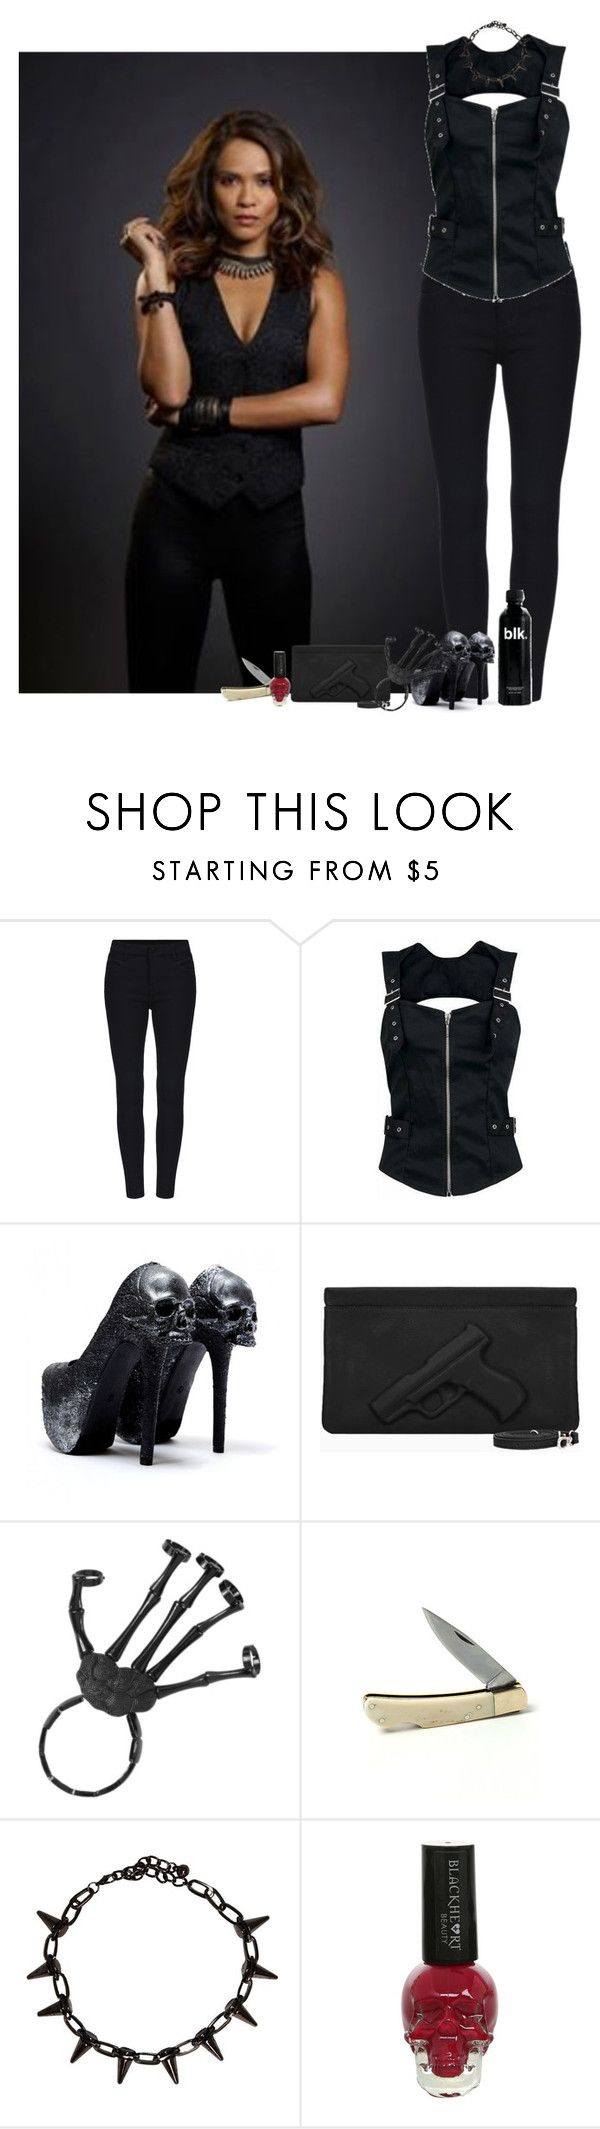 """Mazikeen"" by saradrobna ❤ liked on Polyvore featuring Blackbird, Lucifer, maze and mazikeen"